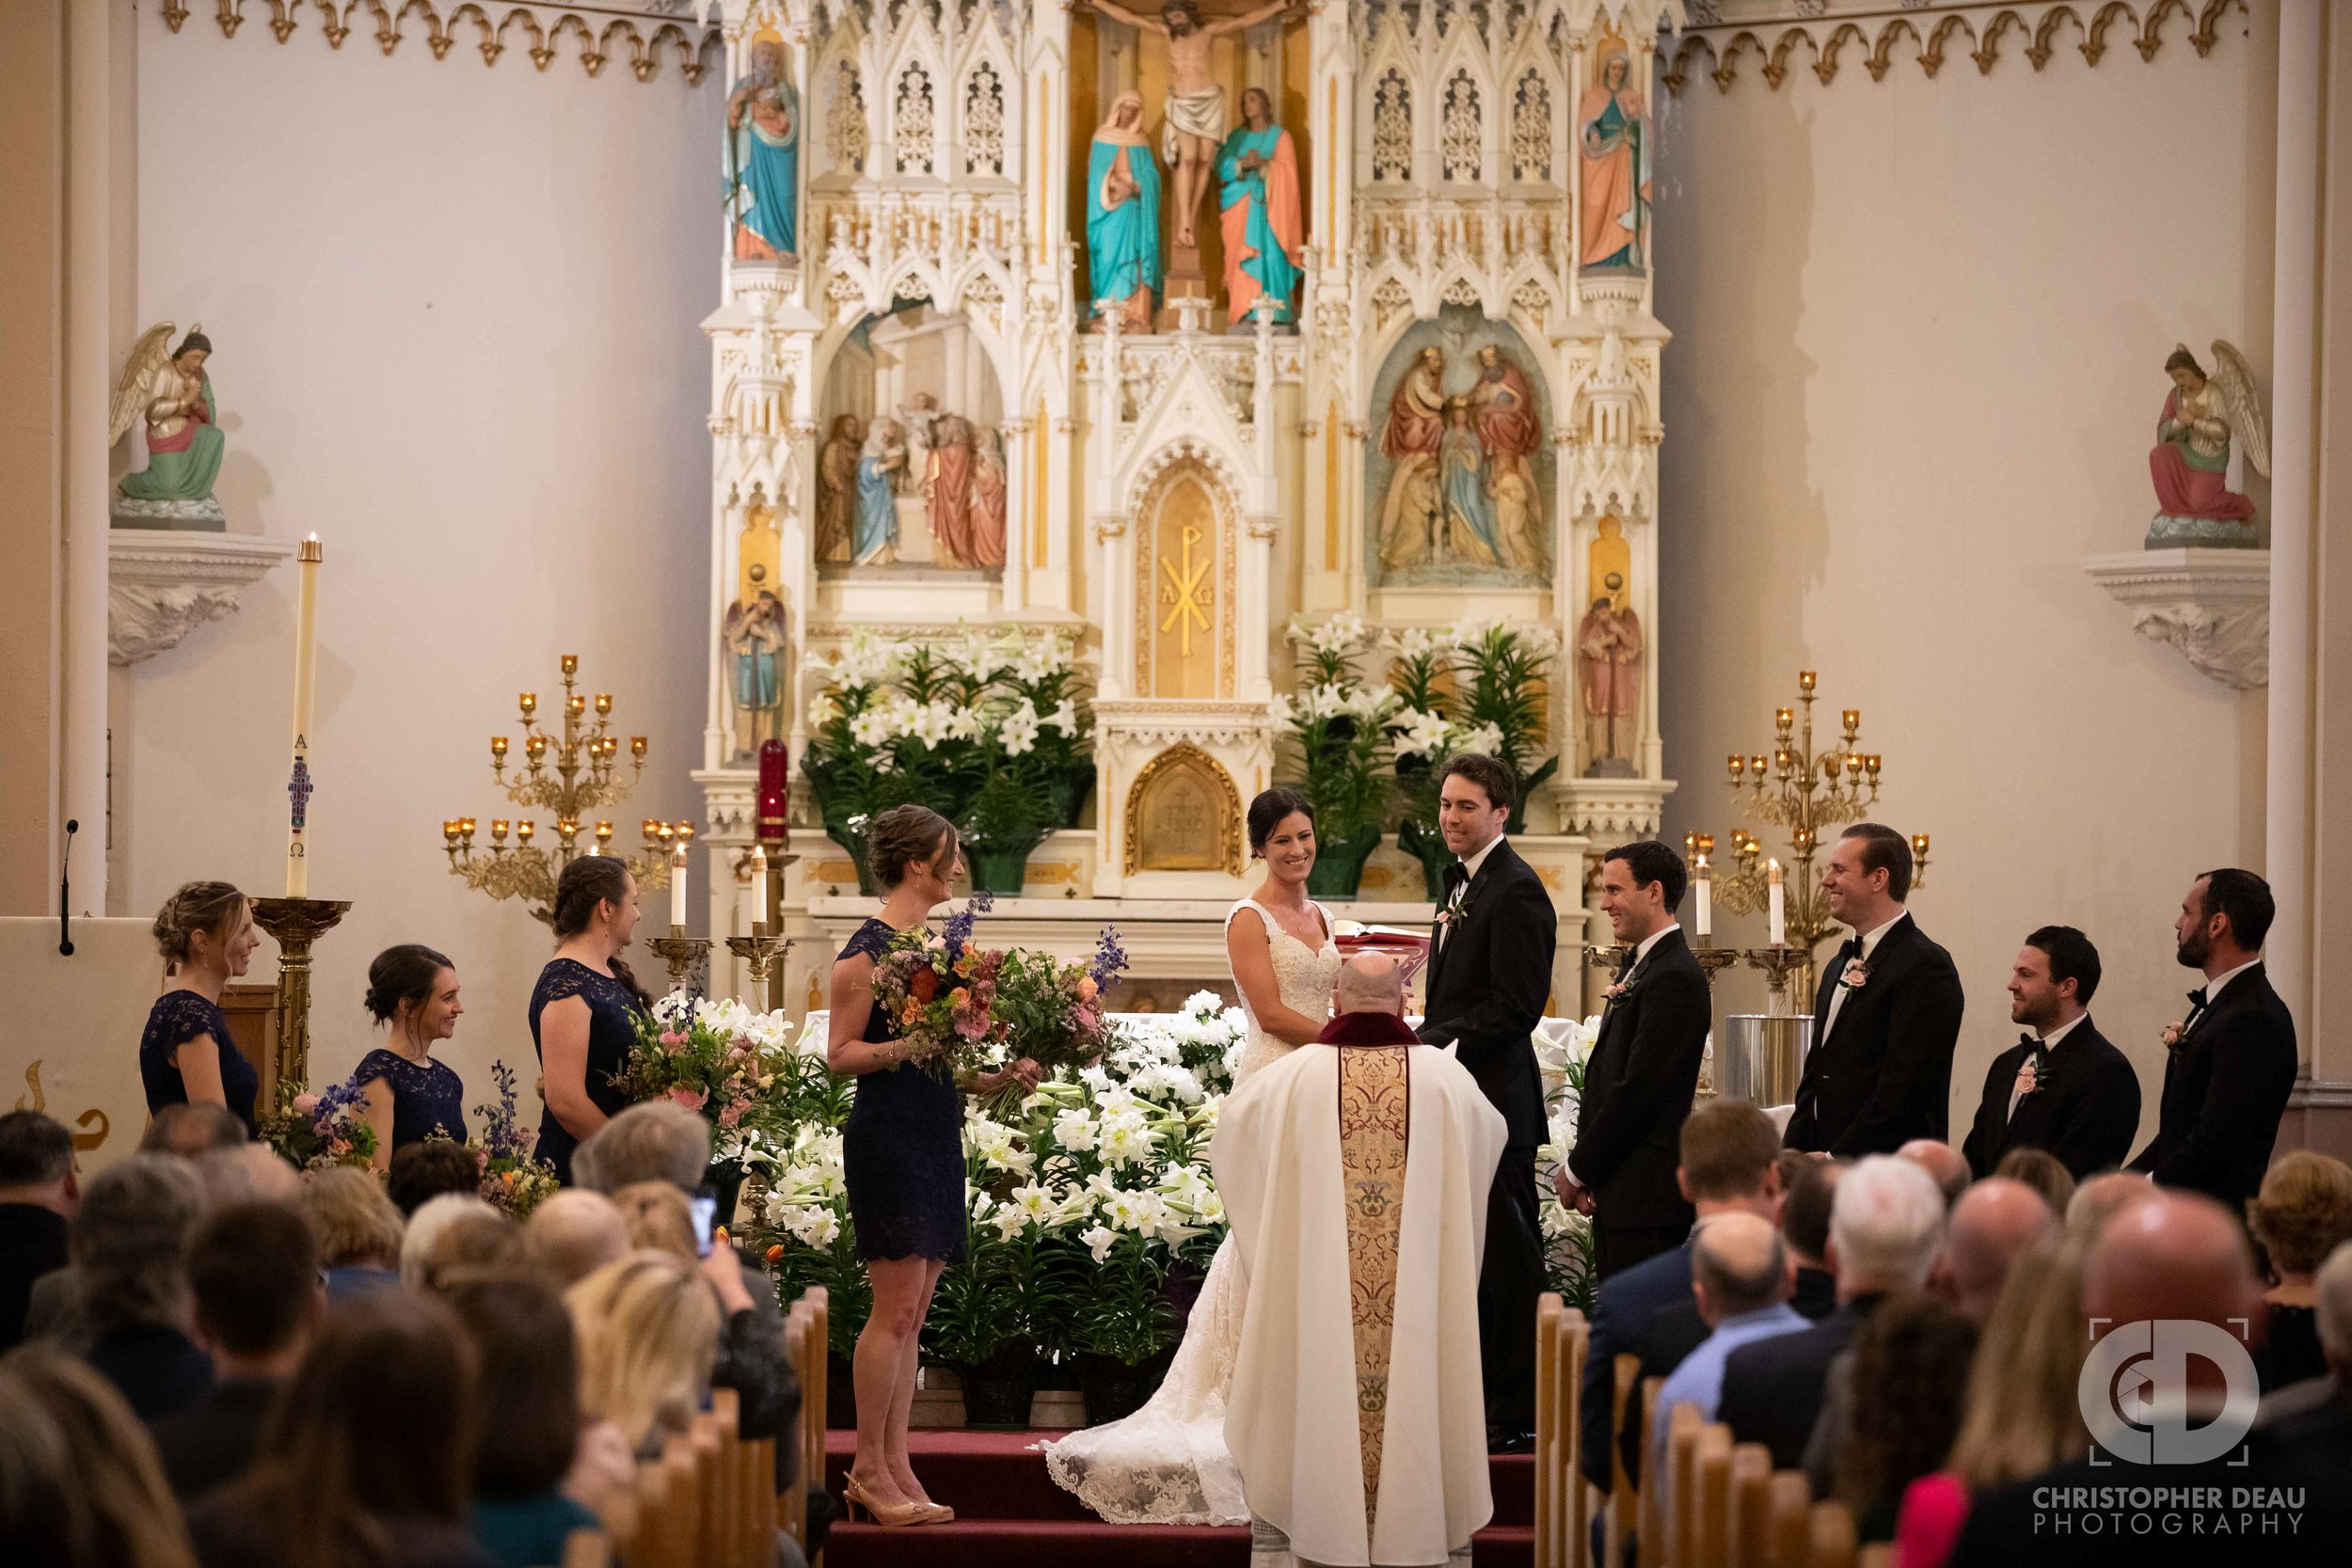 church ceremony 2.jpg